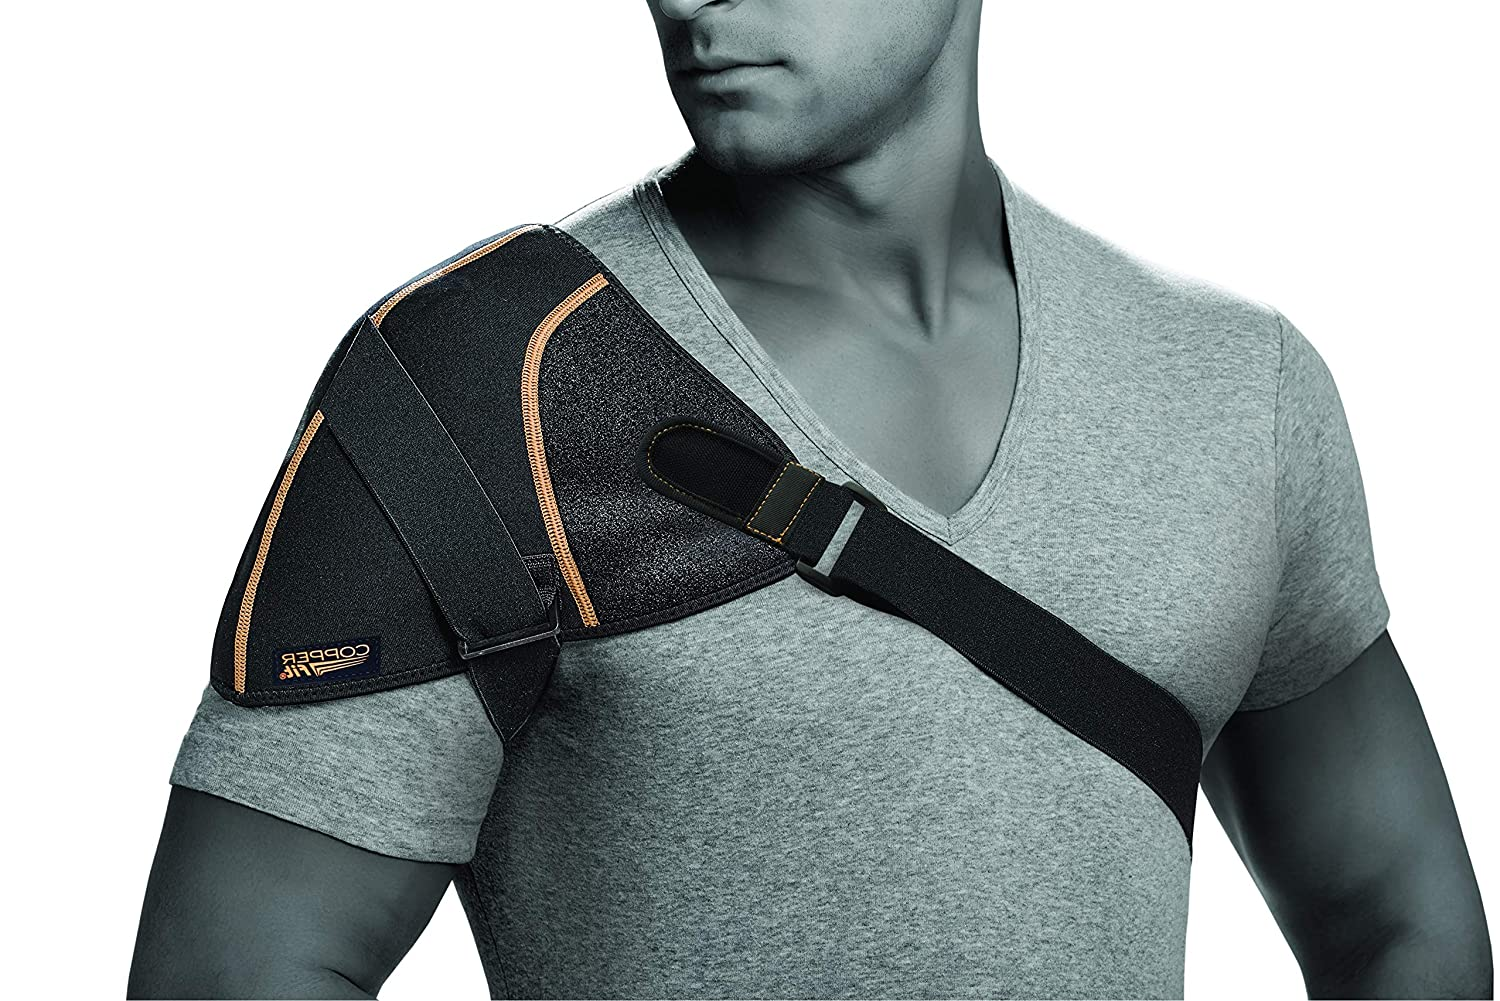 Copper Fit Rapid Relief Shoulder Brace with Hot/Cold Ice Pack